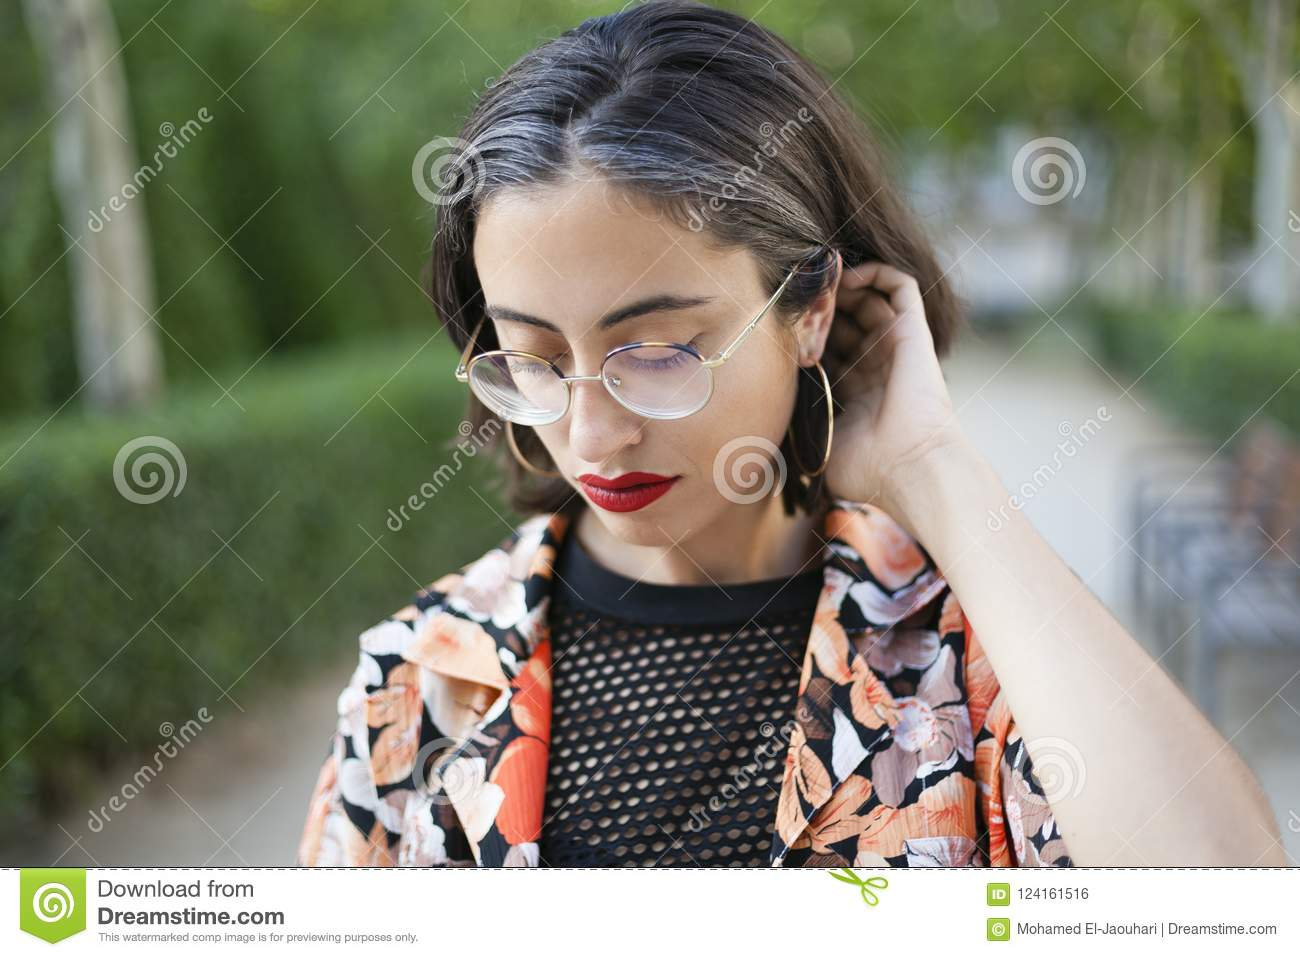 Trendy girl with glasses portrait.